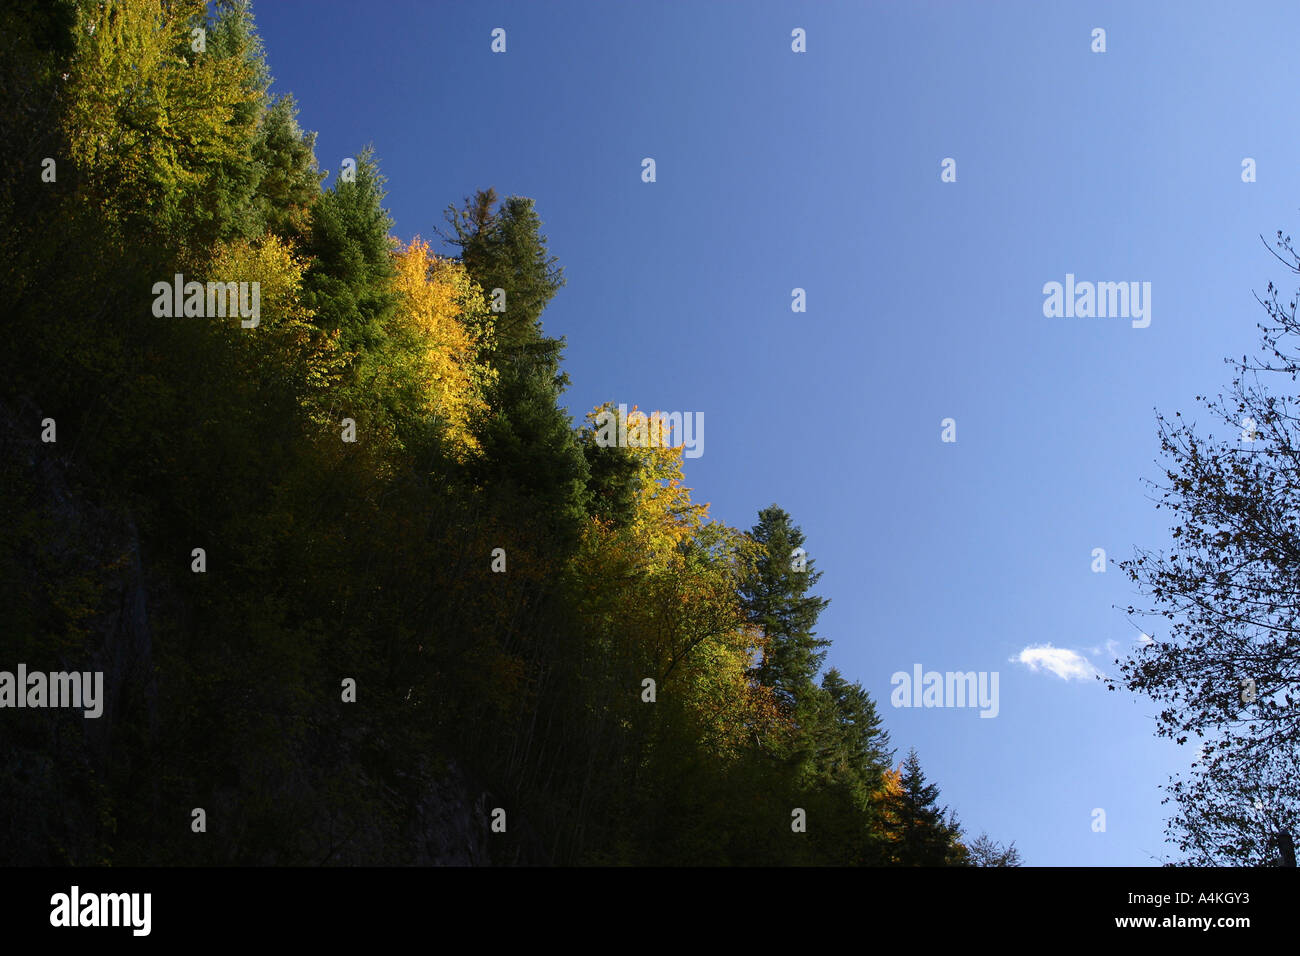 France, Jura, trees on mountain side in autumn - Stock Image